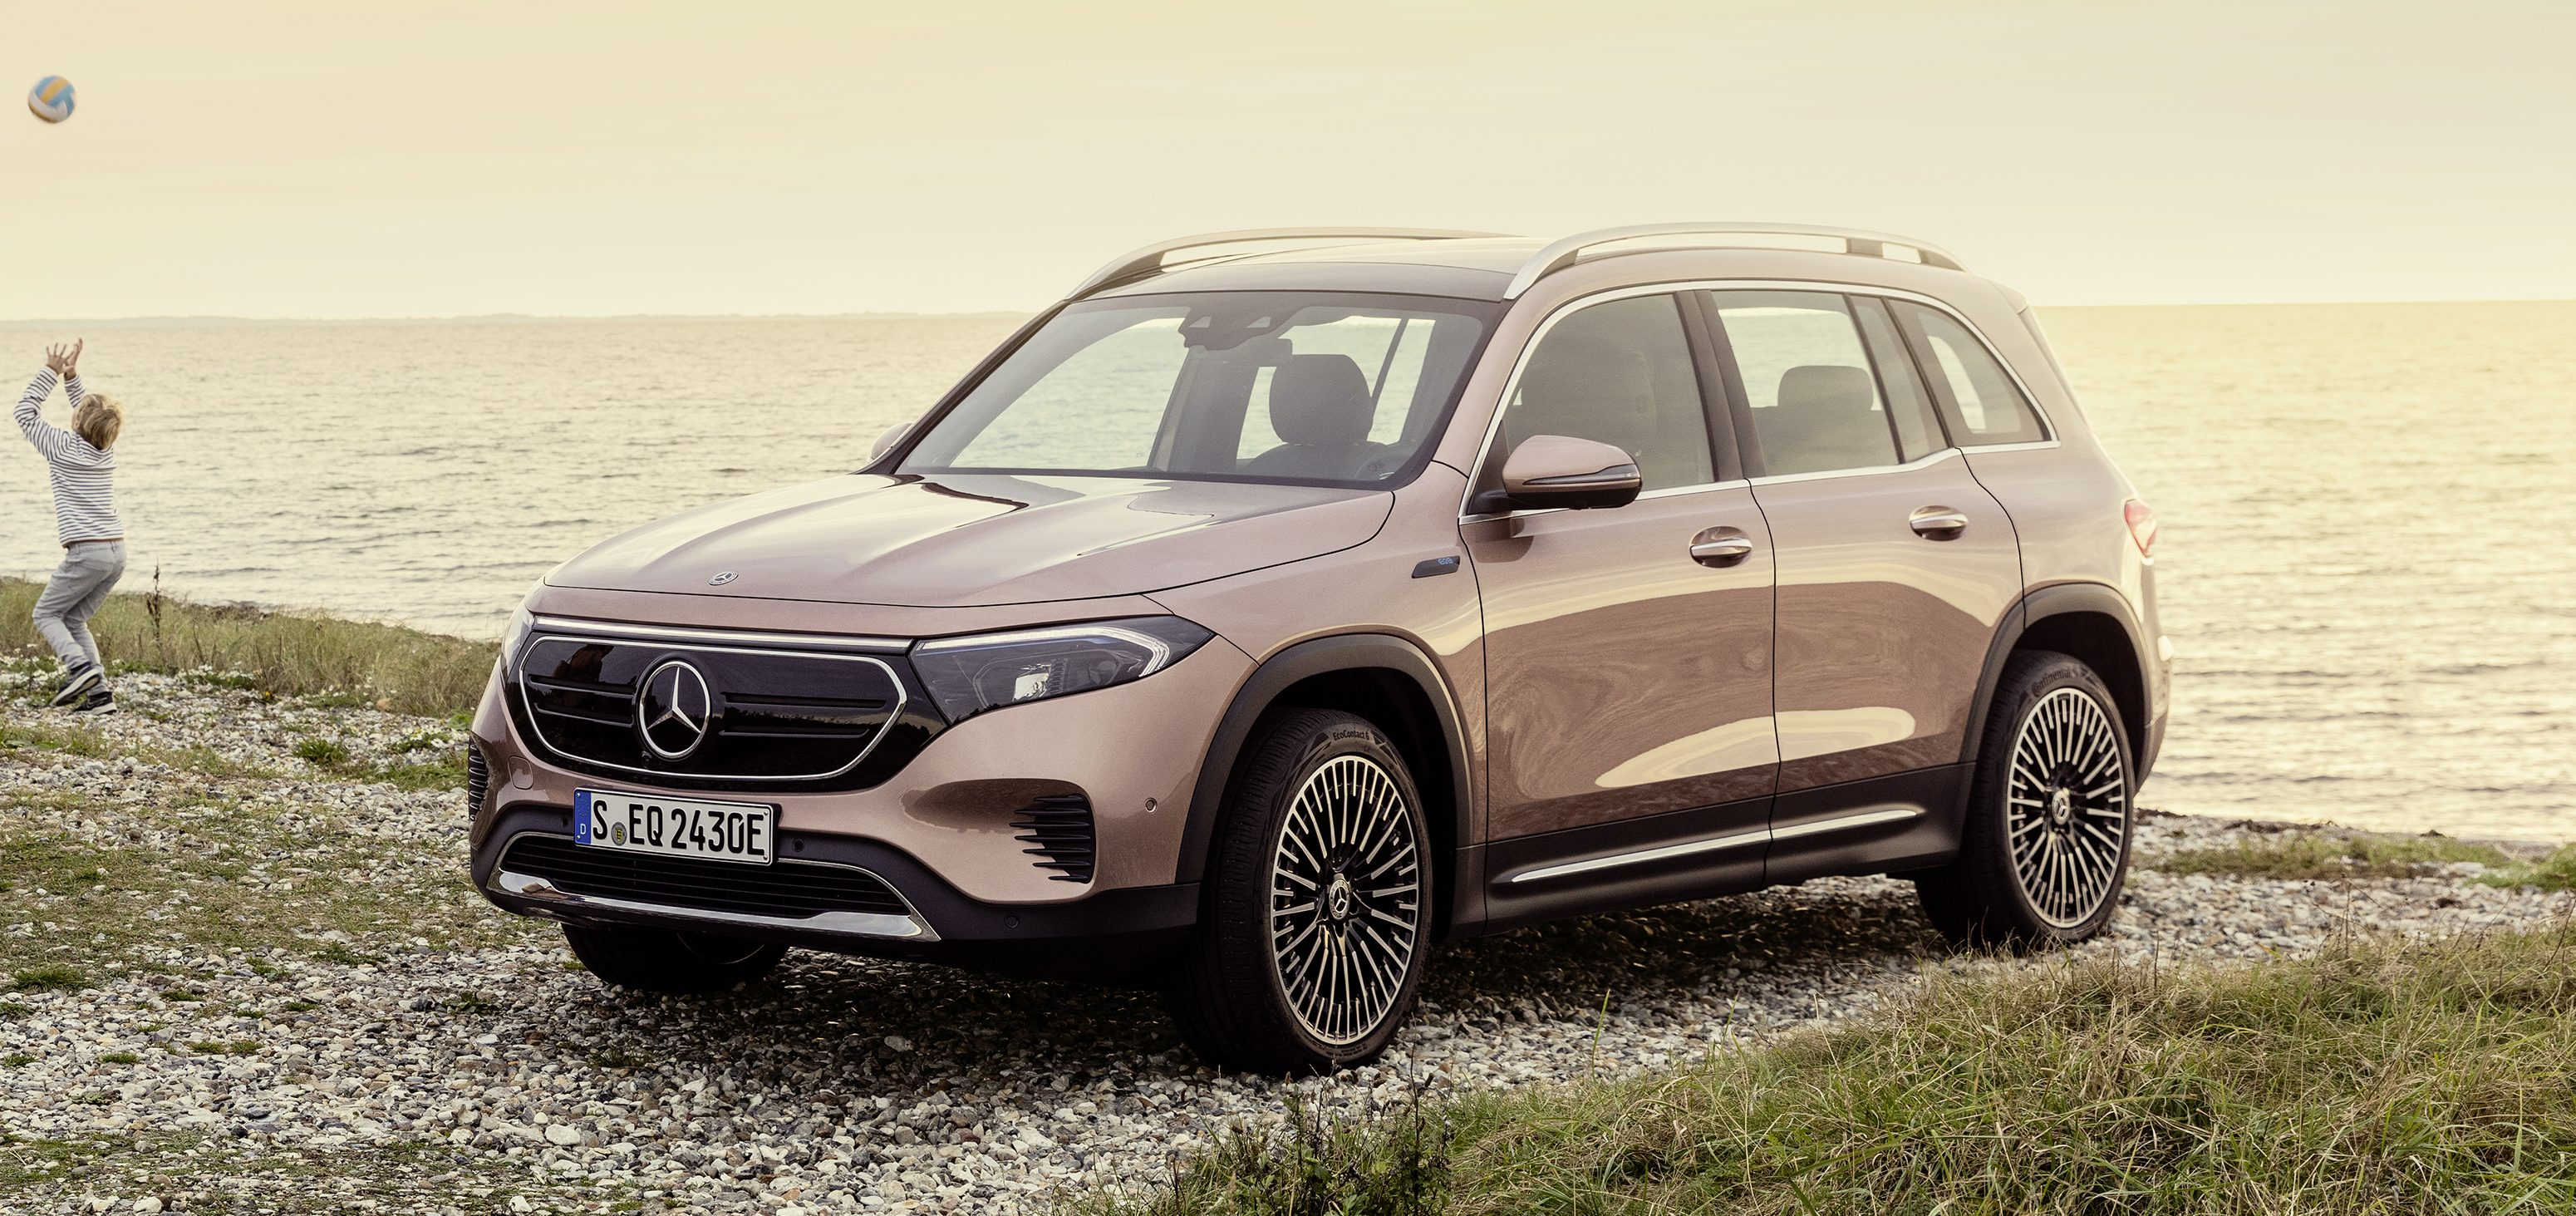 Mercedes-Benz launches EQB, up-to-7-seat electric SUV to compete against Tesla Model Y thumbnail